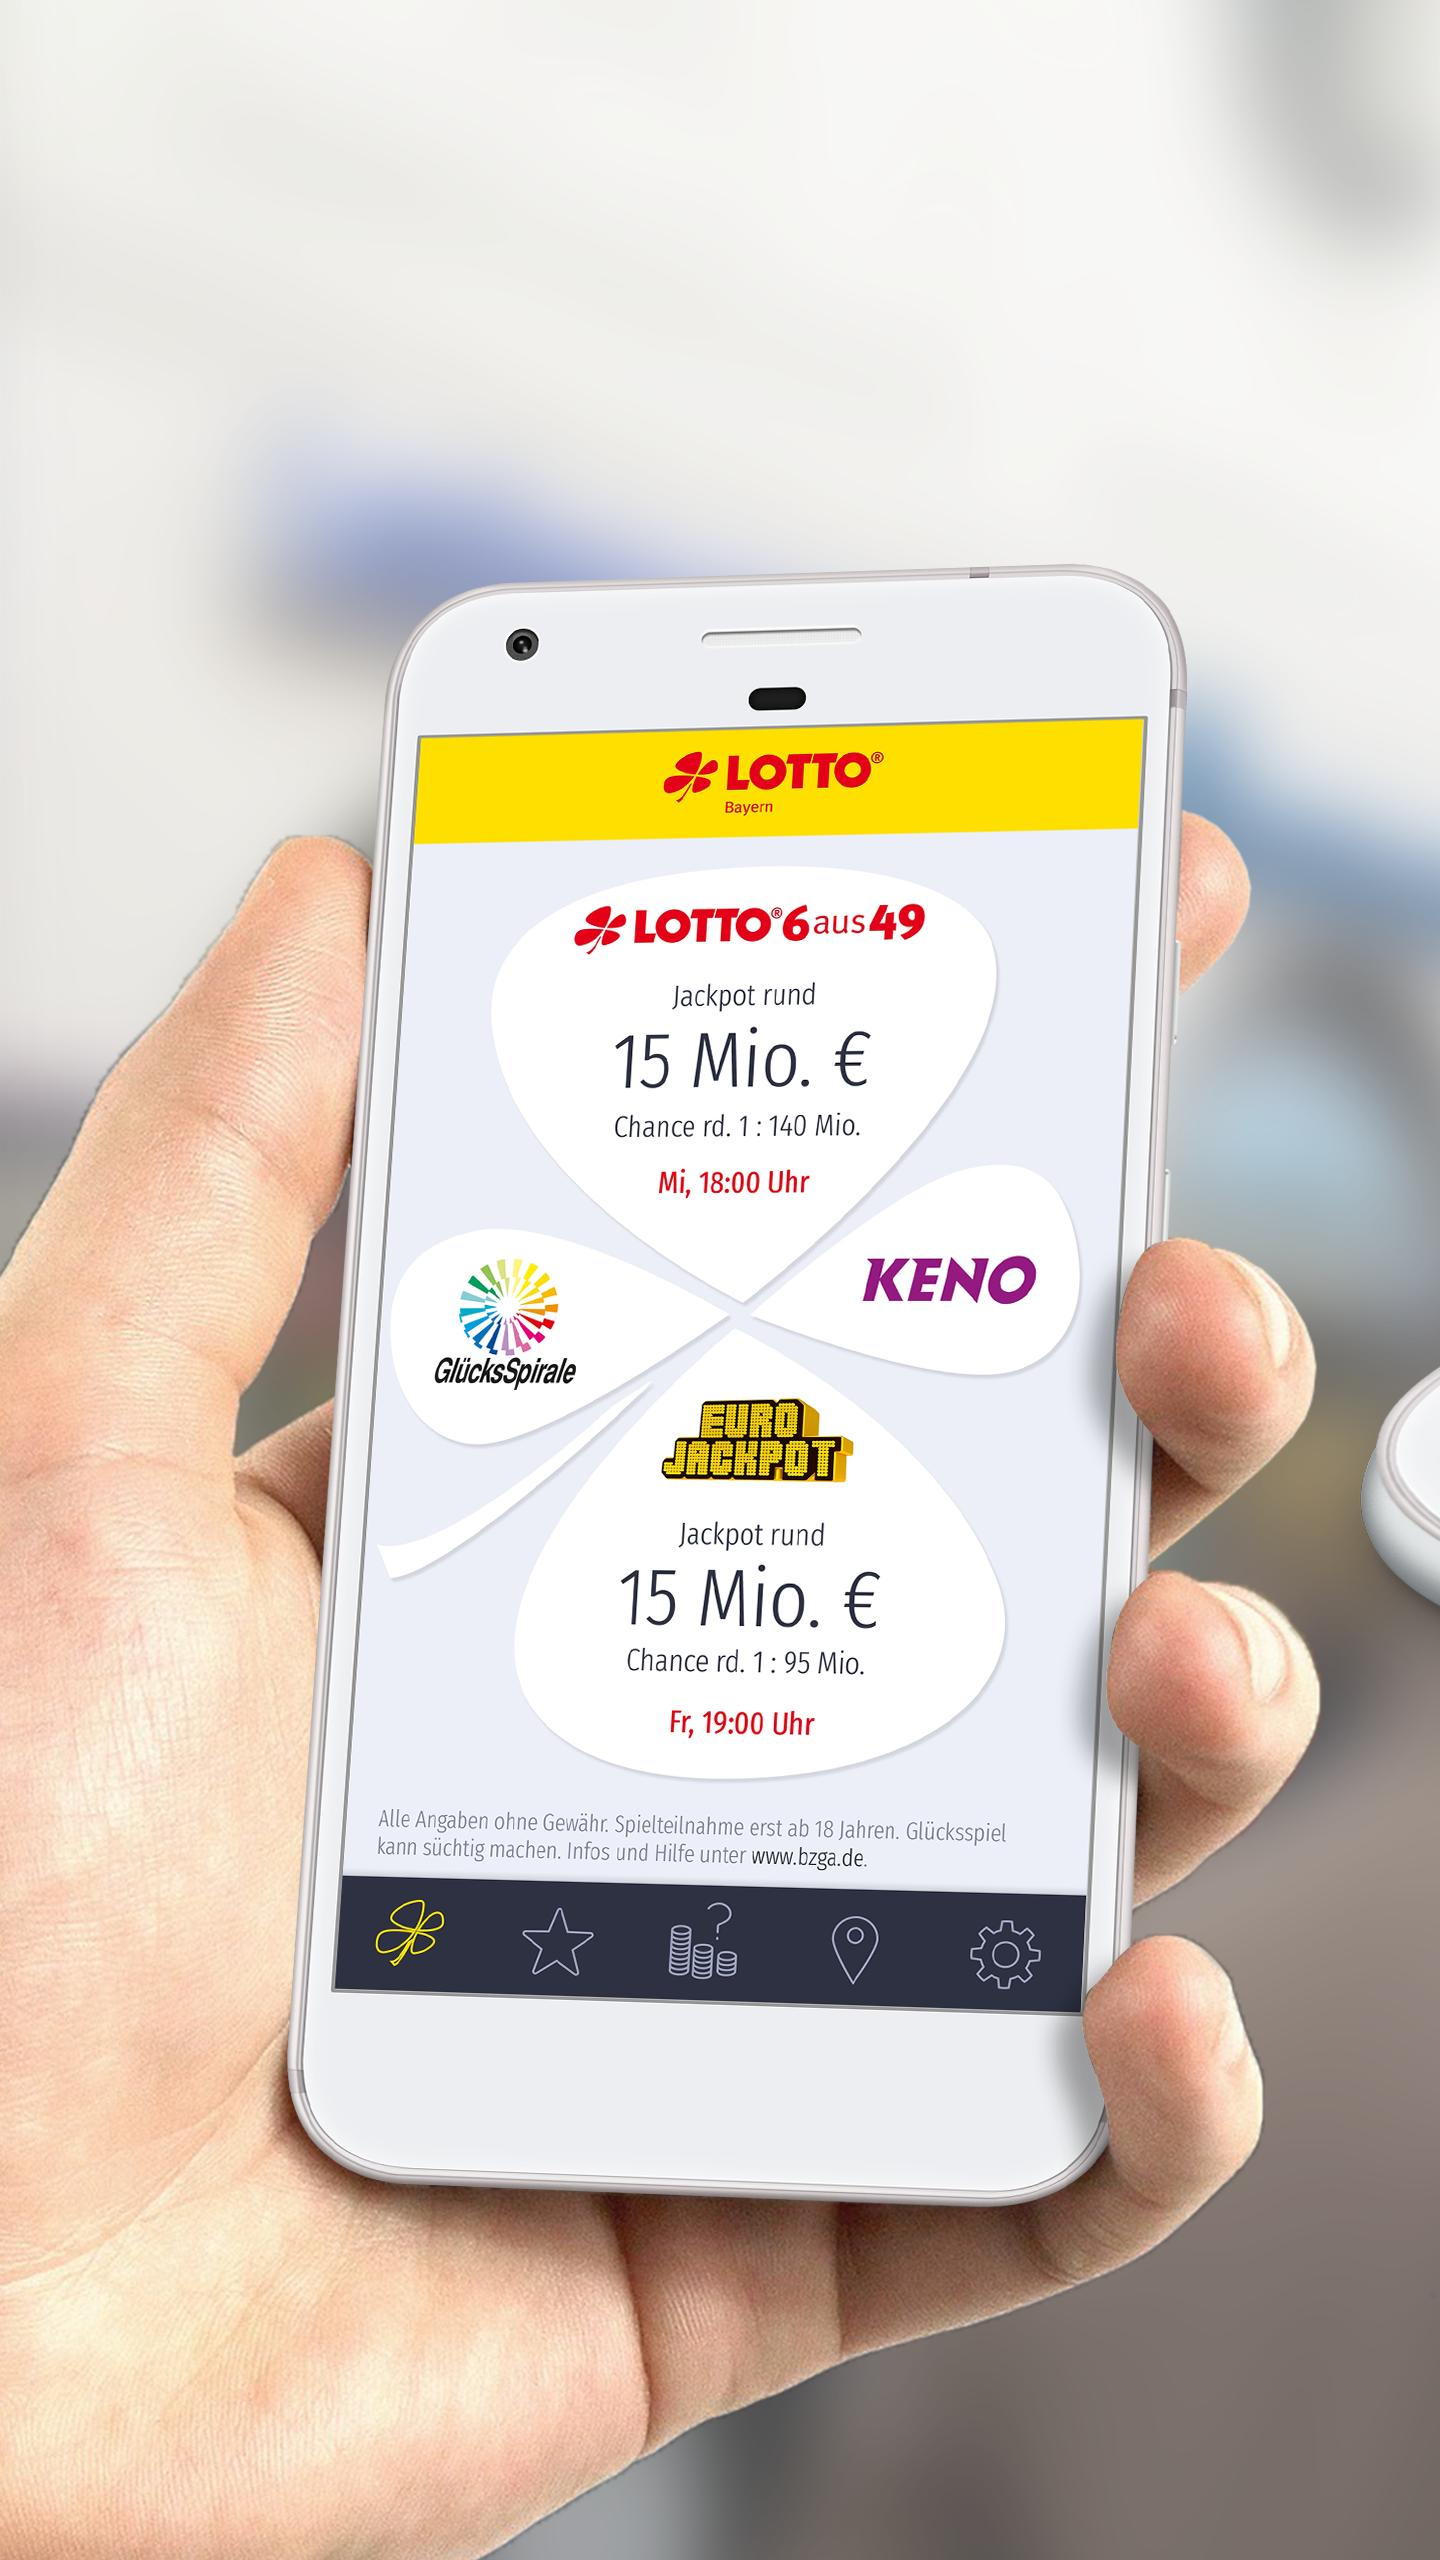 Sapp Lotto Bayern Service App For Android Apk Download